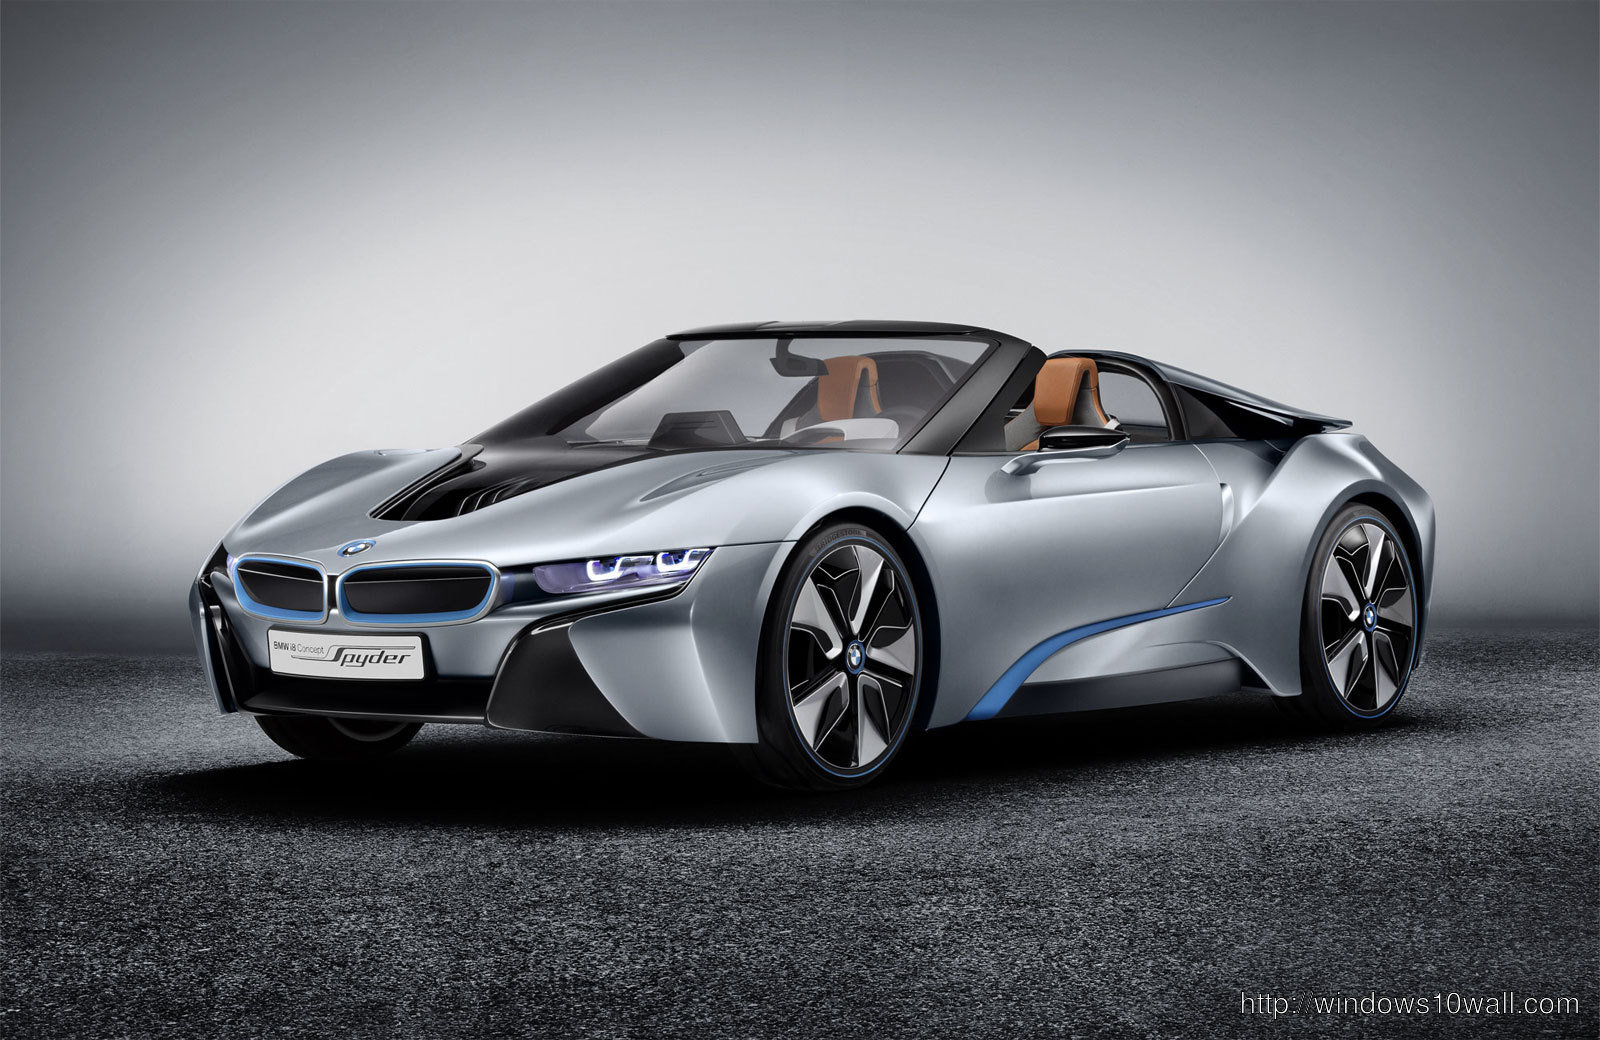 BMW i8 Concept Spyder 2013 Background Wallpaper